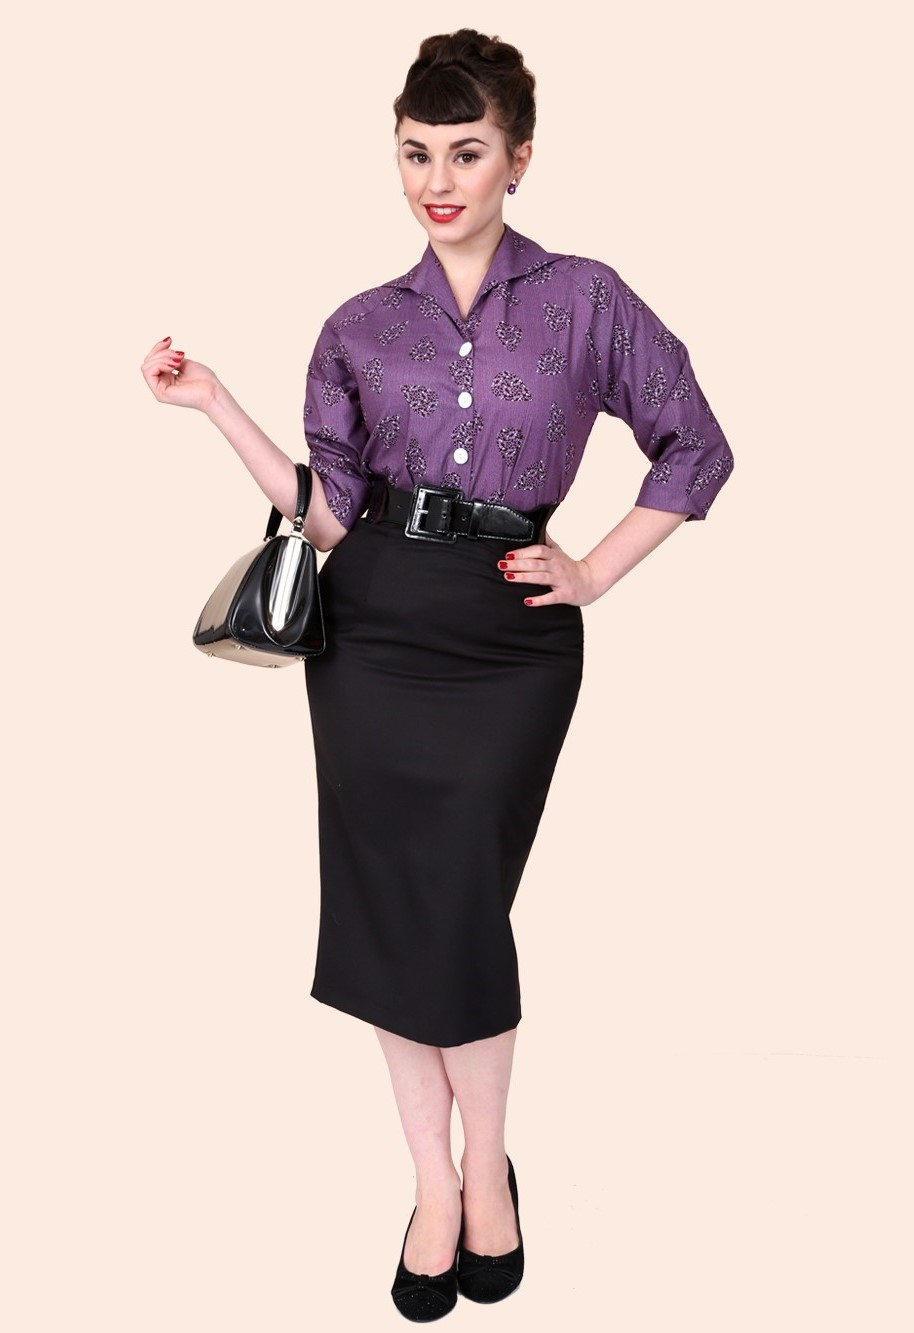 Stylish Pencil Skirt outfit examples vintage style black-cotton